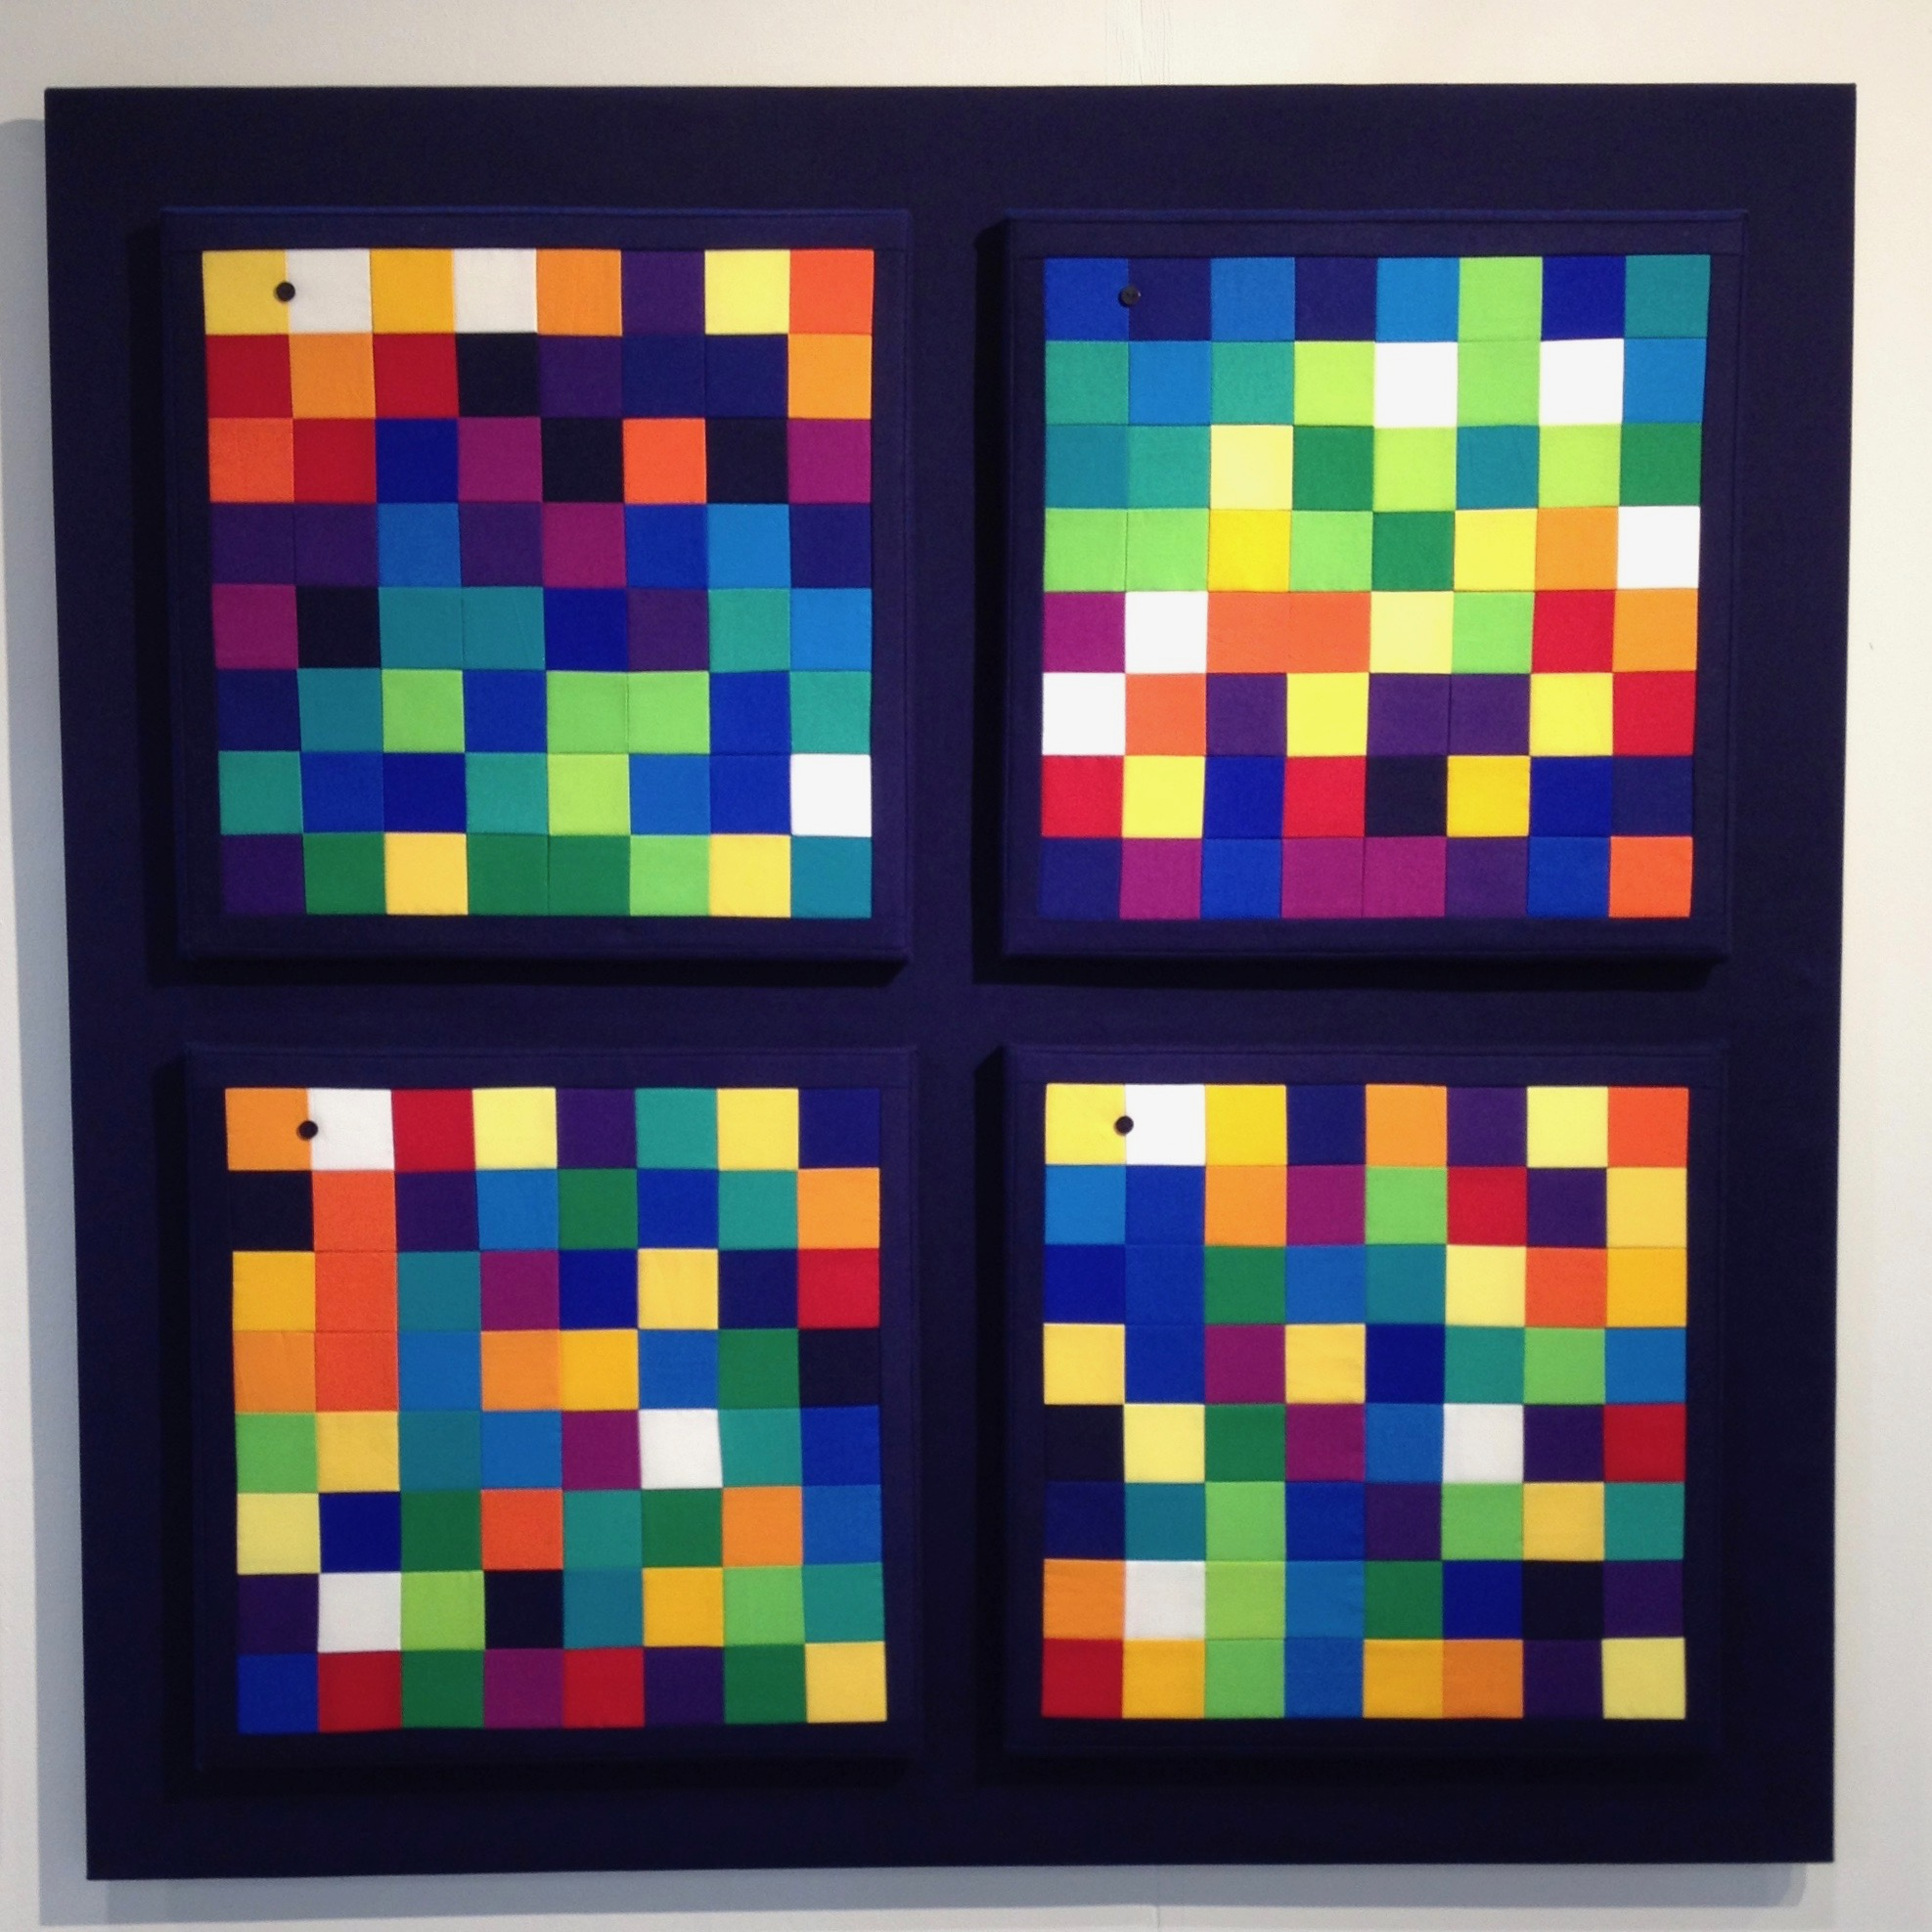 Four little slices of Pi - 99cm square2018* 100% cotton fabric* 100% cotton batting* calico backing* tie quilted* 4 canvas stretchers* mounted on fabric covered mdf* split batten wall fastening* signed and dated on reverseNSF